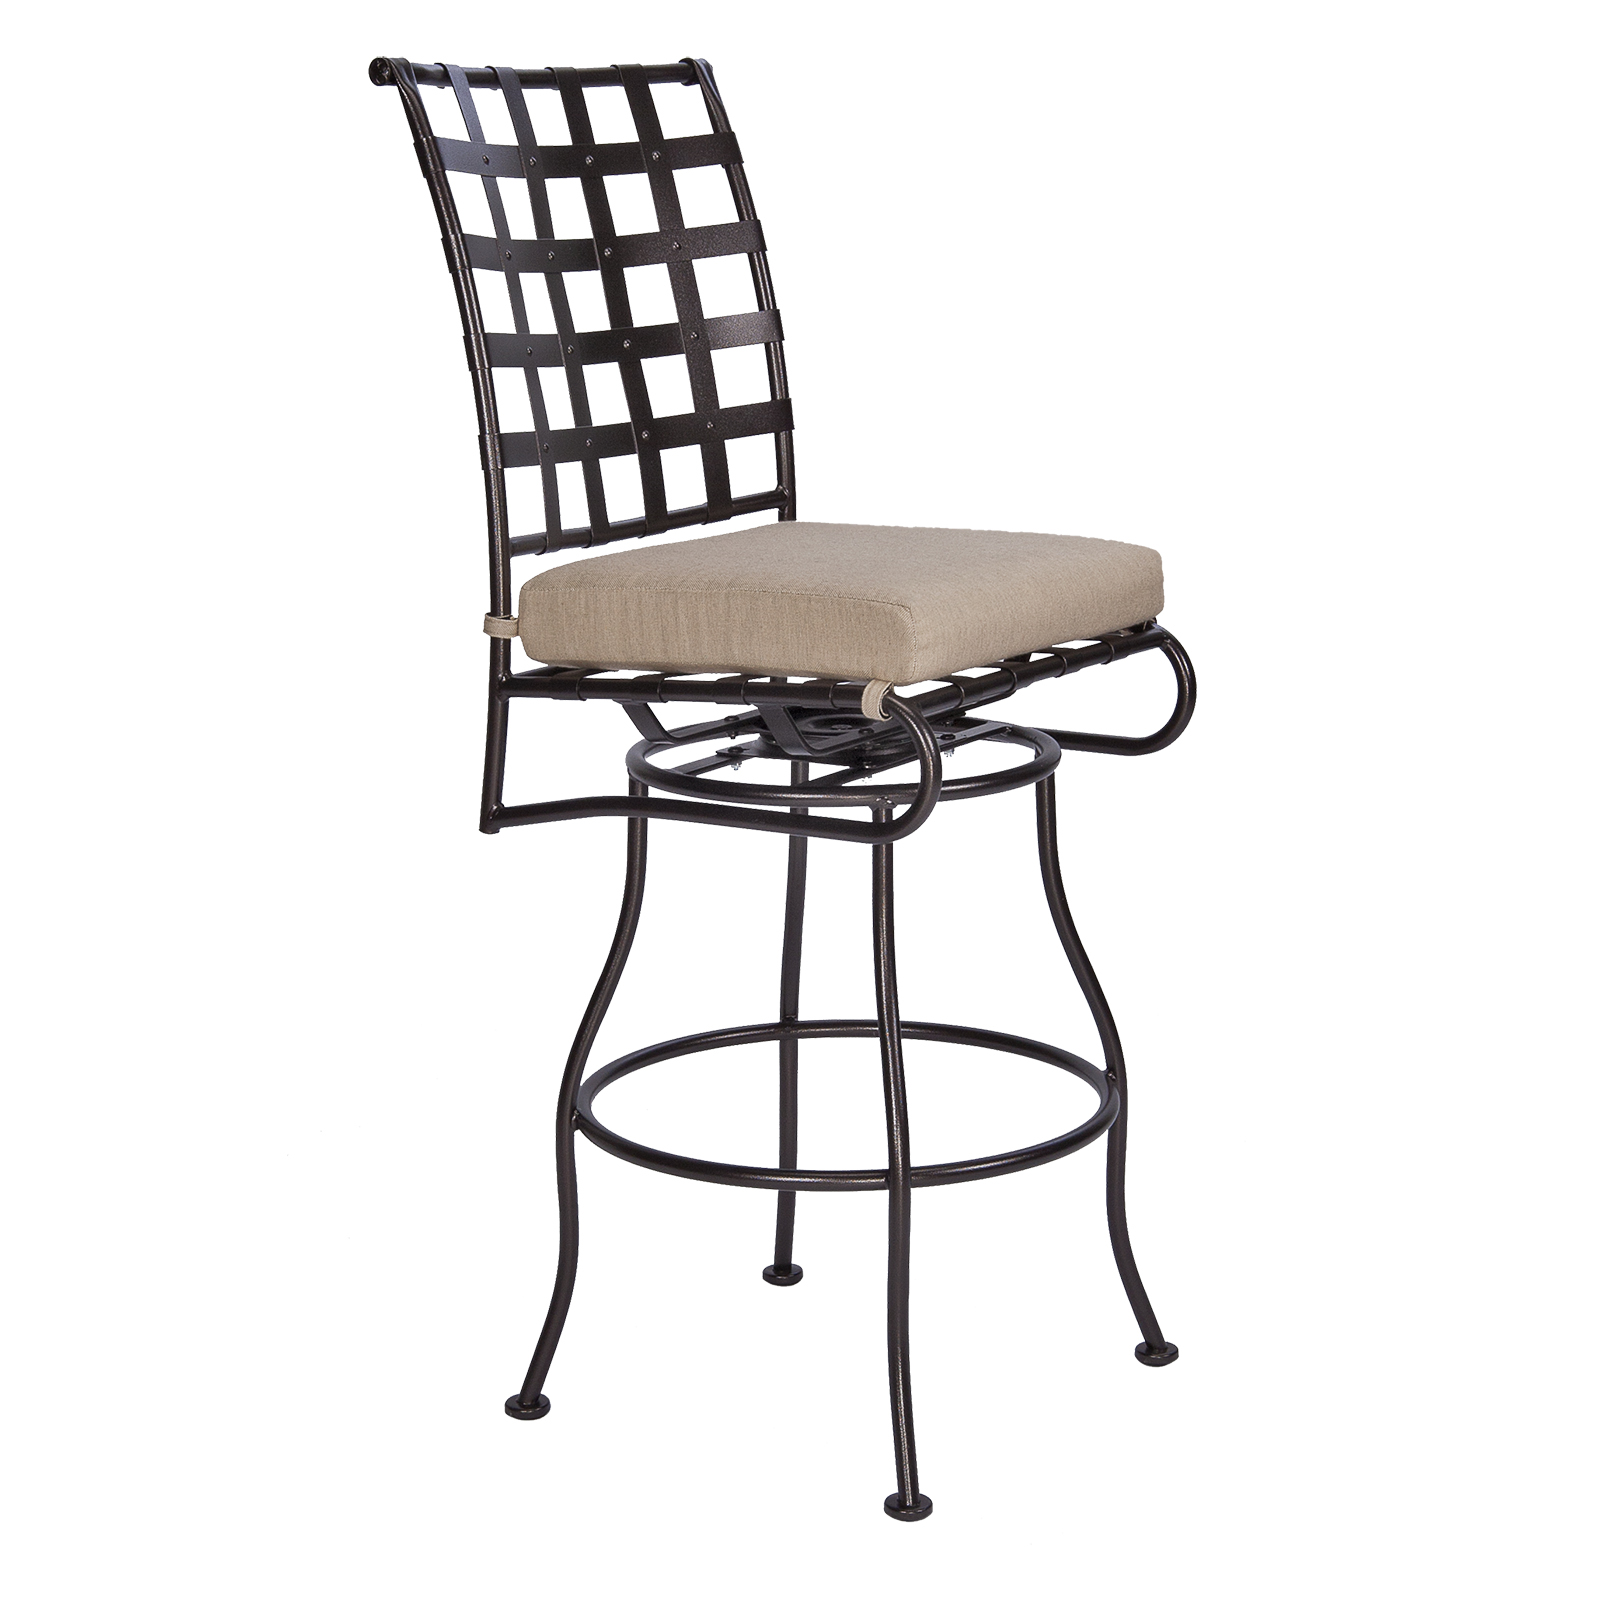 Swivel-Bar-Stool-With-No-Arms-951-SBS_Catalog_GR35_1600-Classico-W-OW-Lee